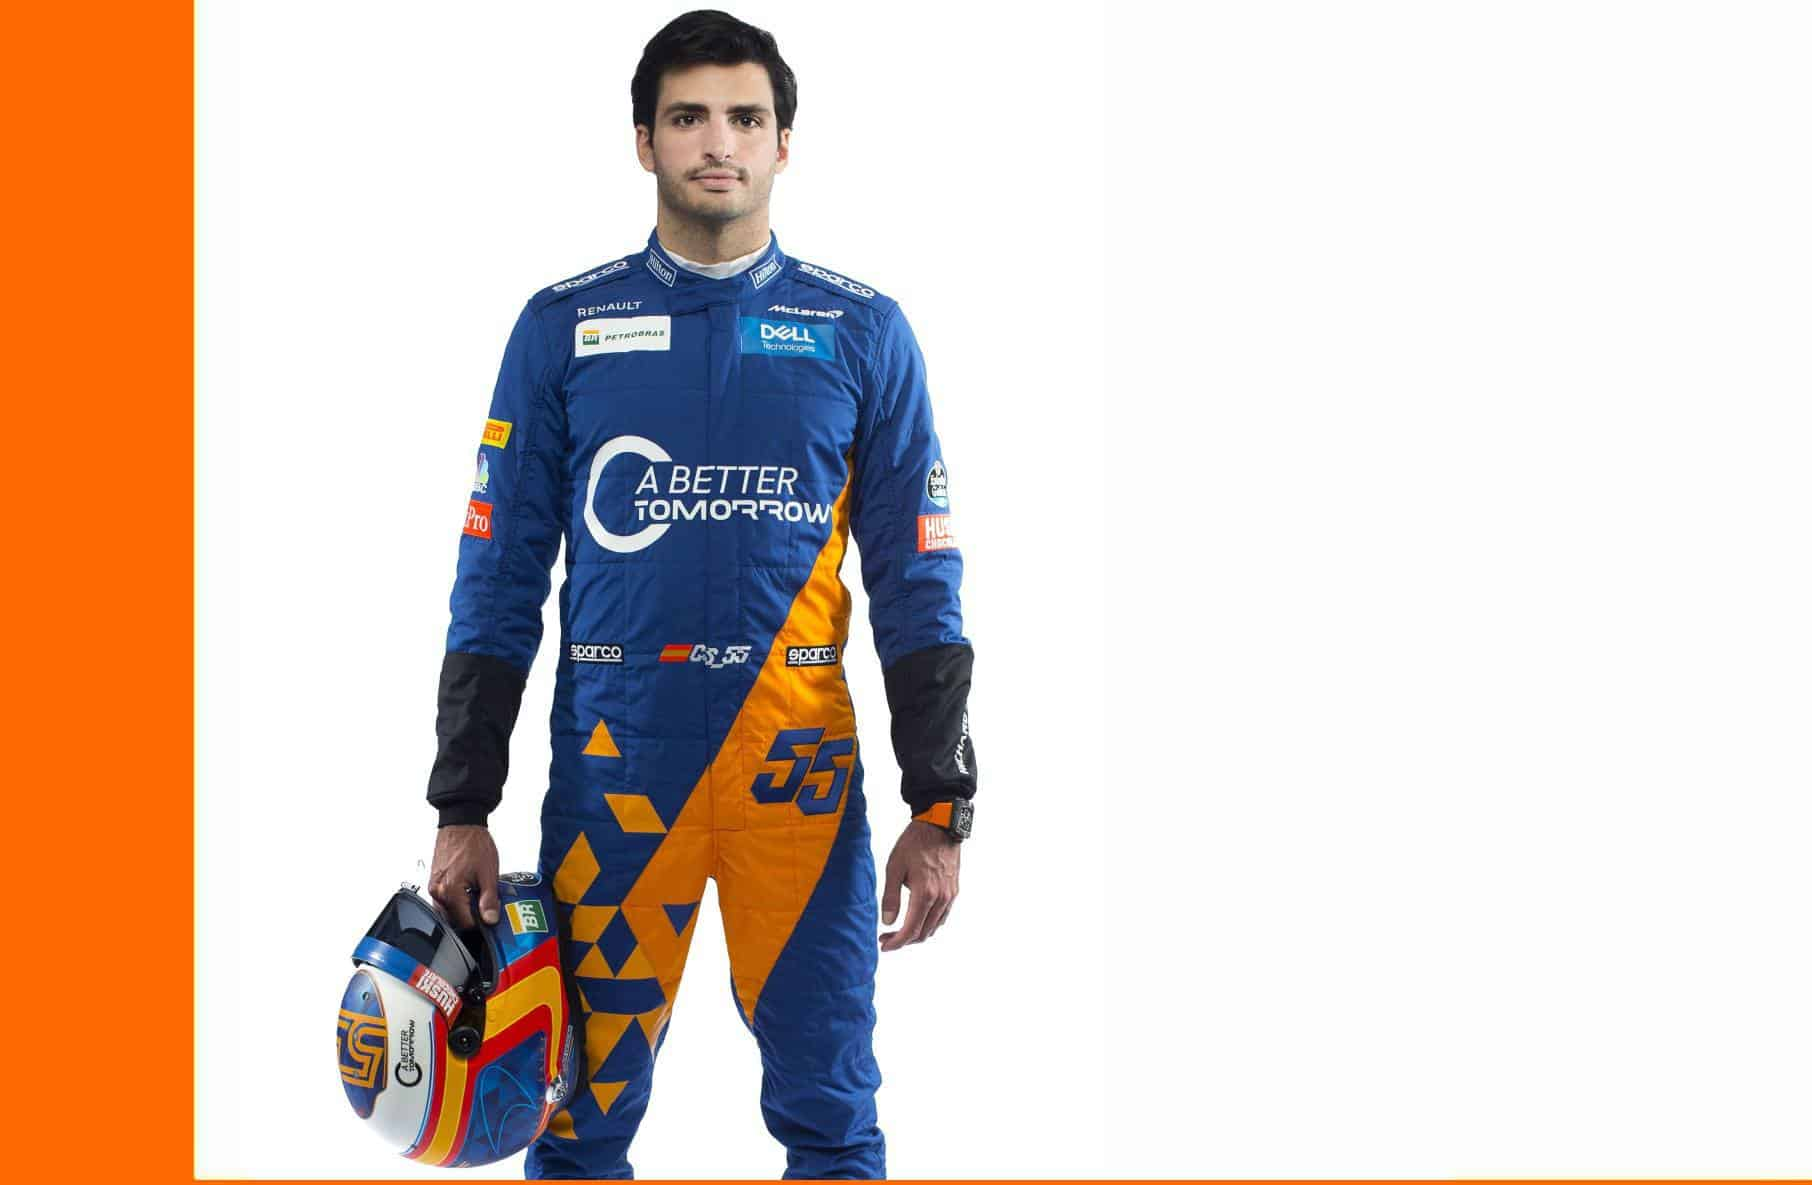 Carlos-Sainz-McLaren-Renault-F1-2019-drivers-profile-Photo-MAXF1net